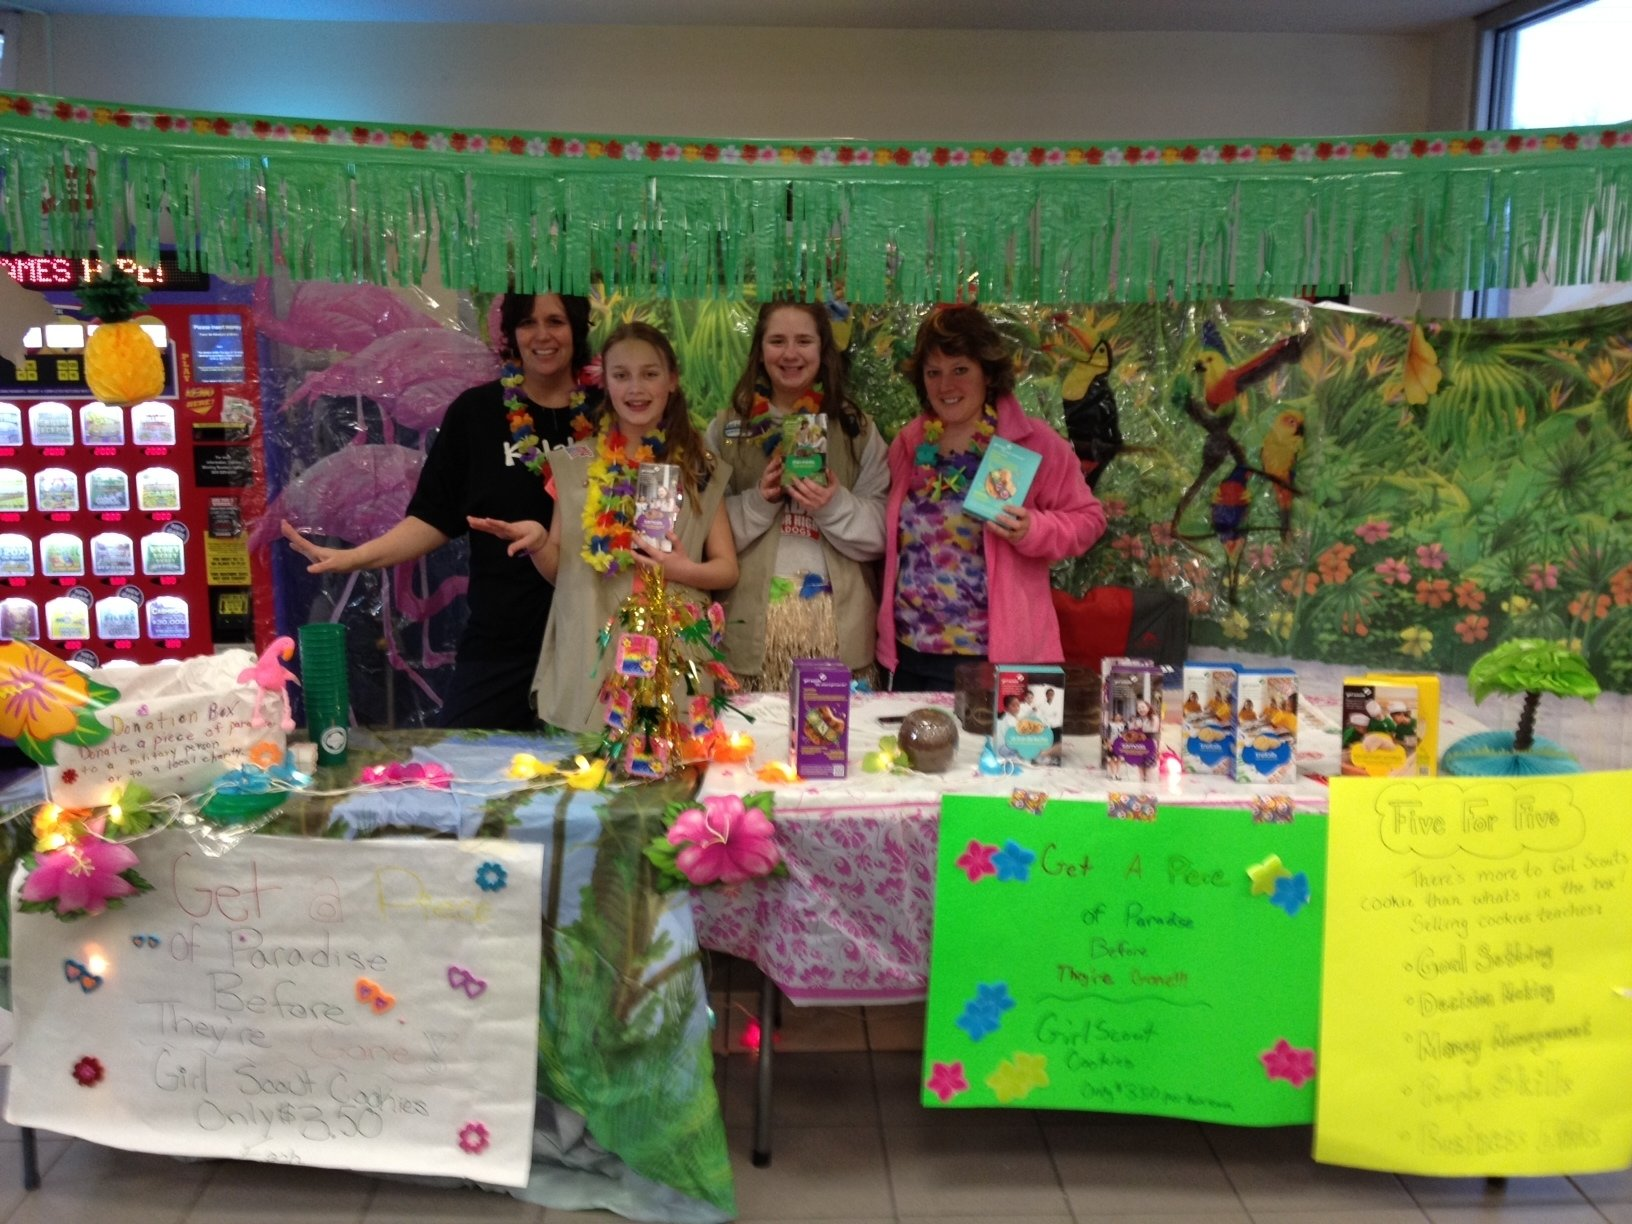 10 Unique Girl Scout Cookie Booth Ideas scout leader 411 blog ideas for leaders to delegate cookie booth